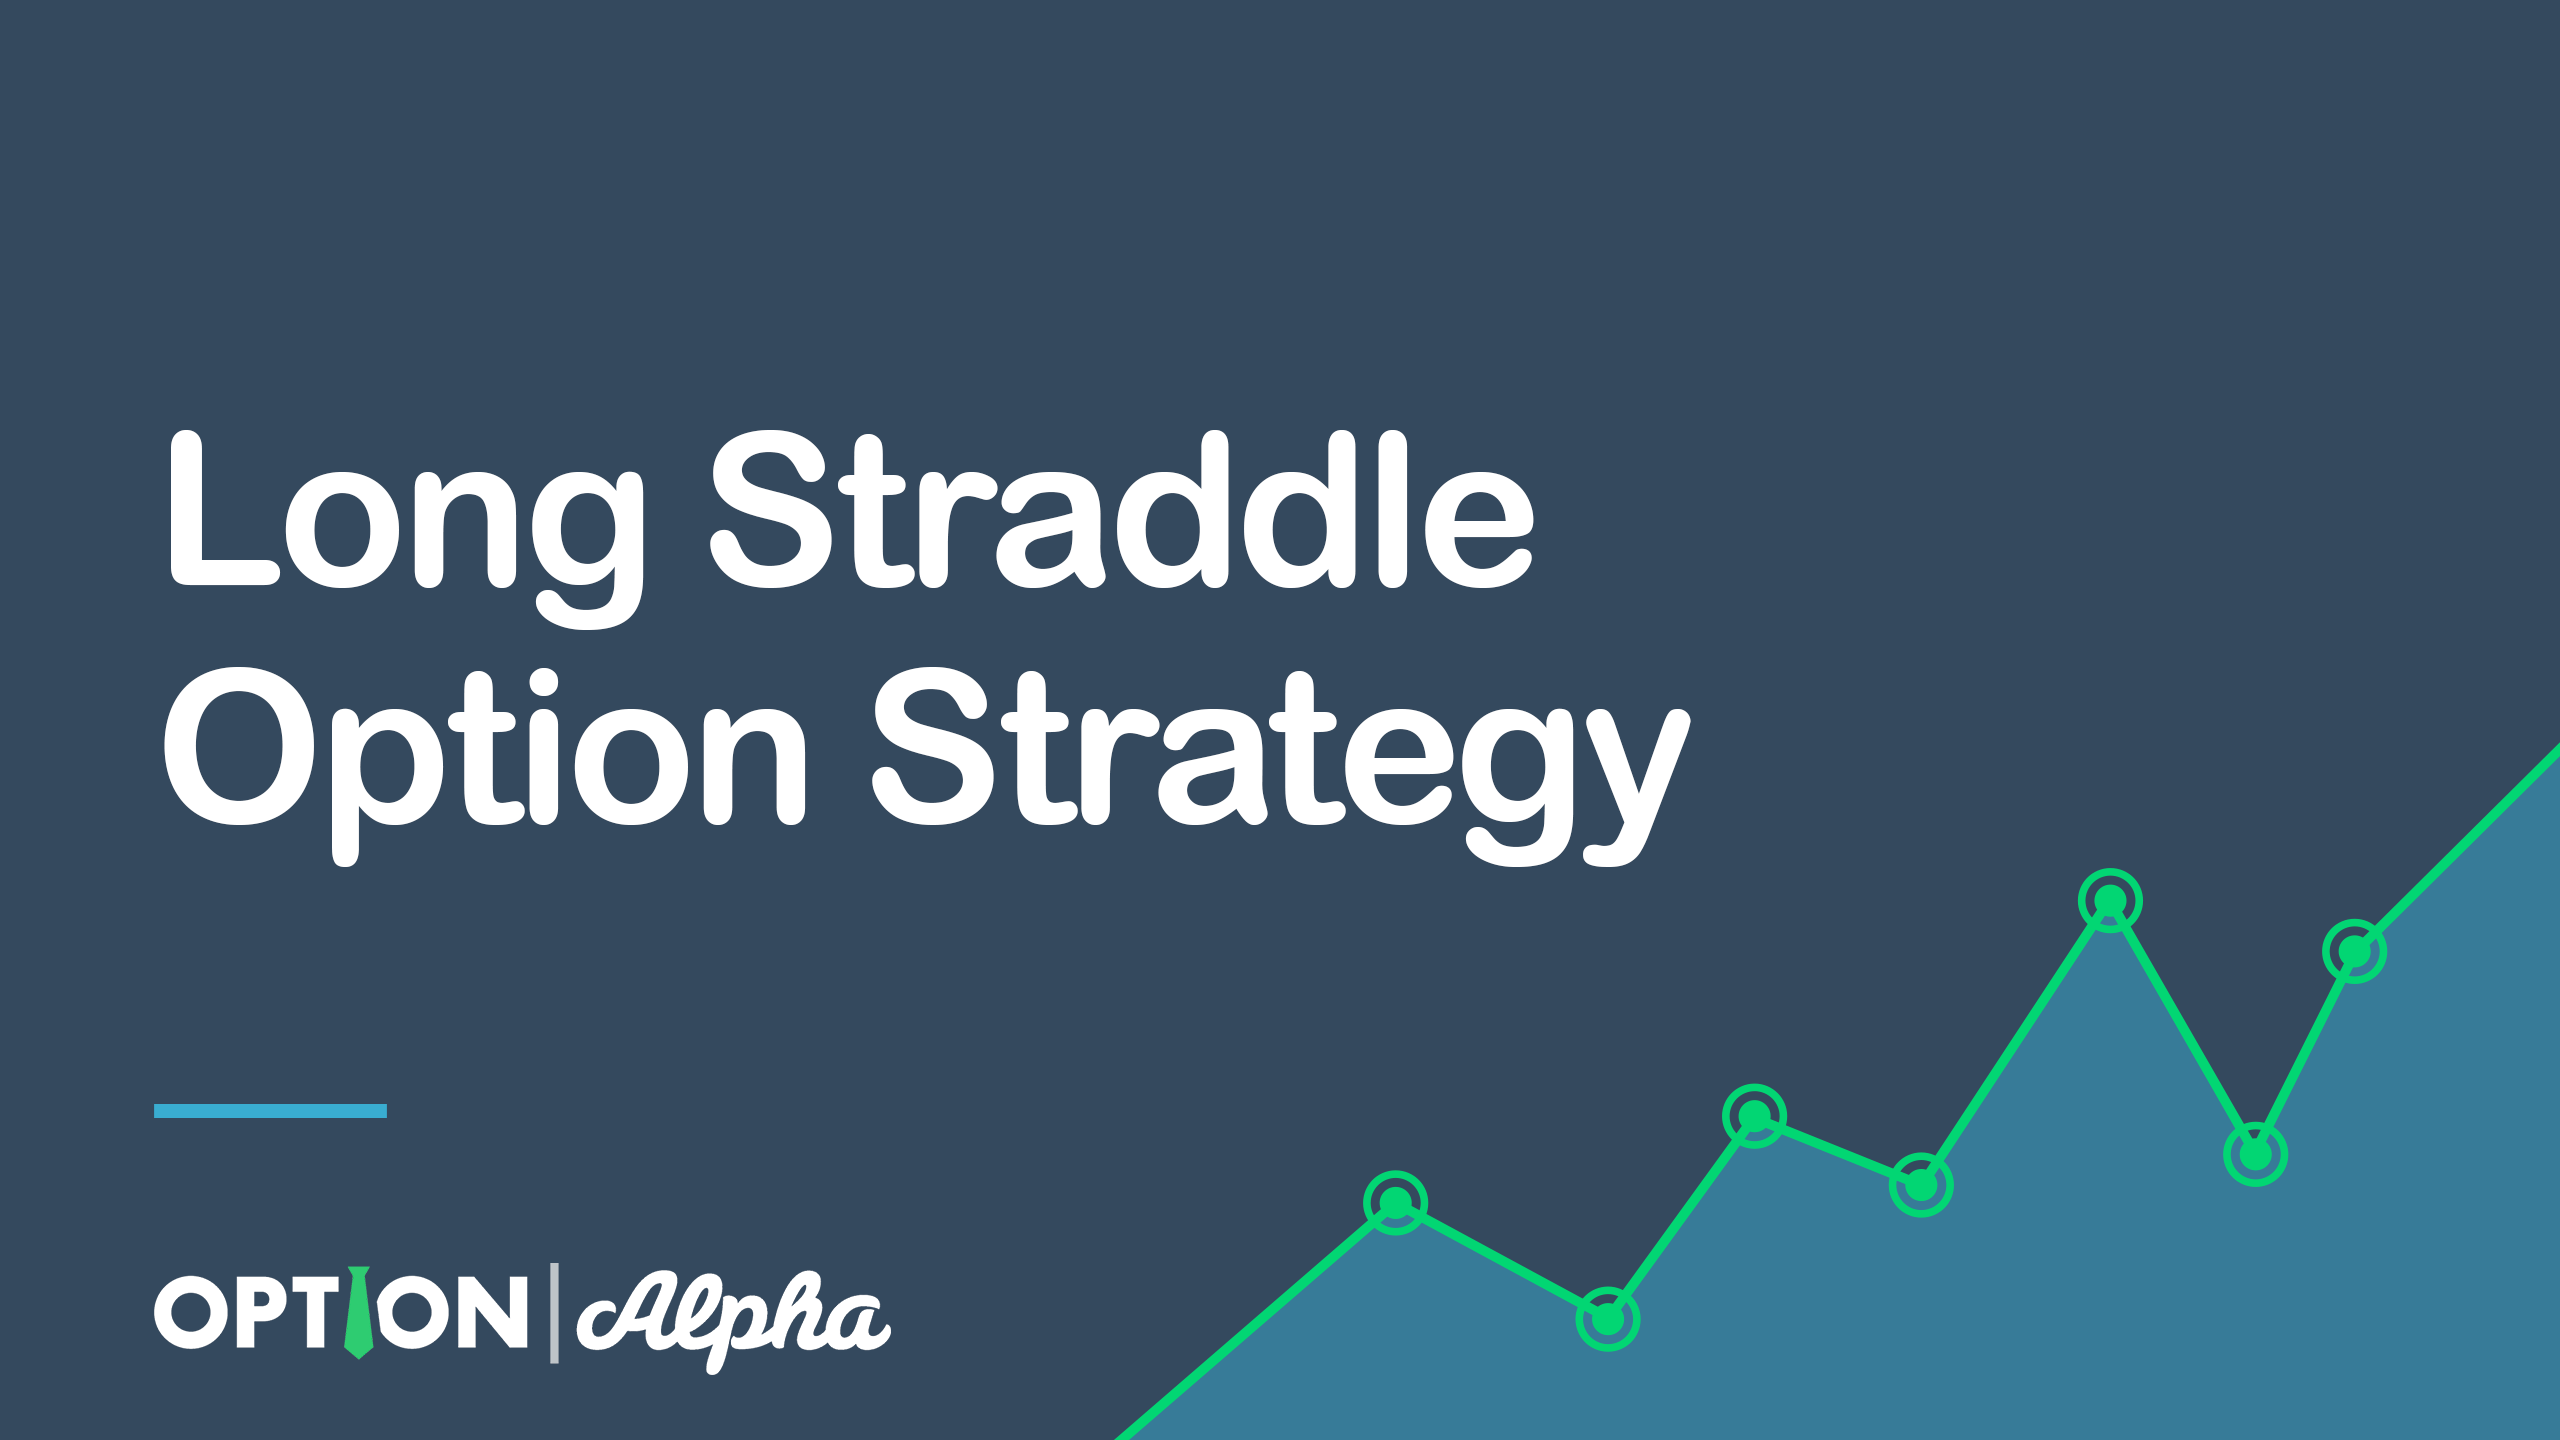 Straddle option trade